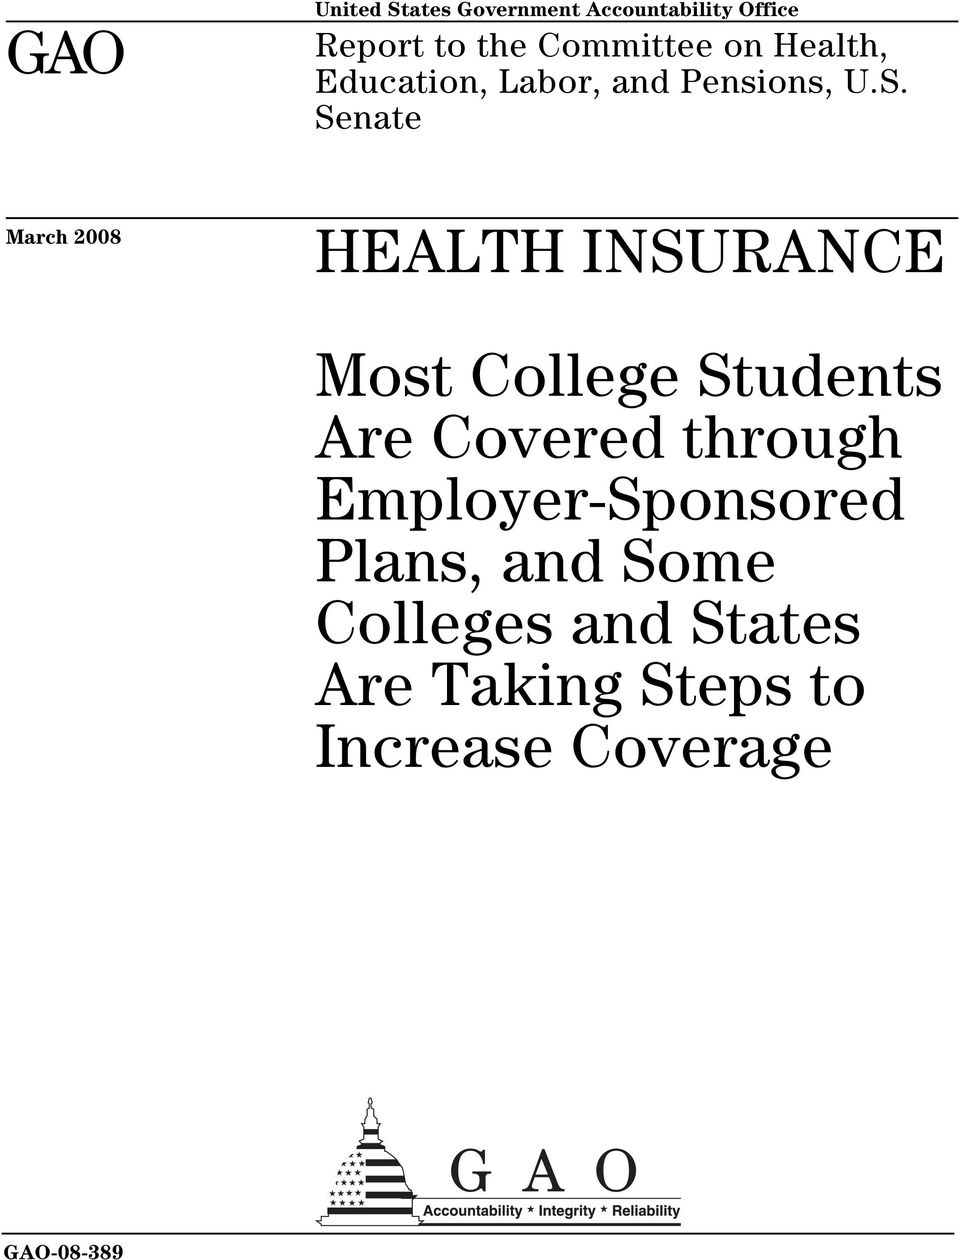 Senate March 2008 HEALTH INSURANCE Most College Students Are Covered